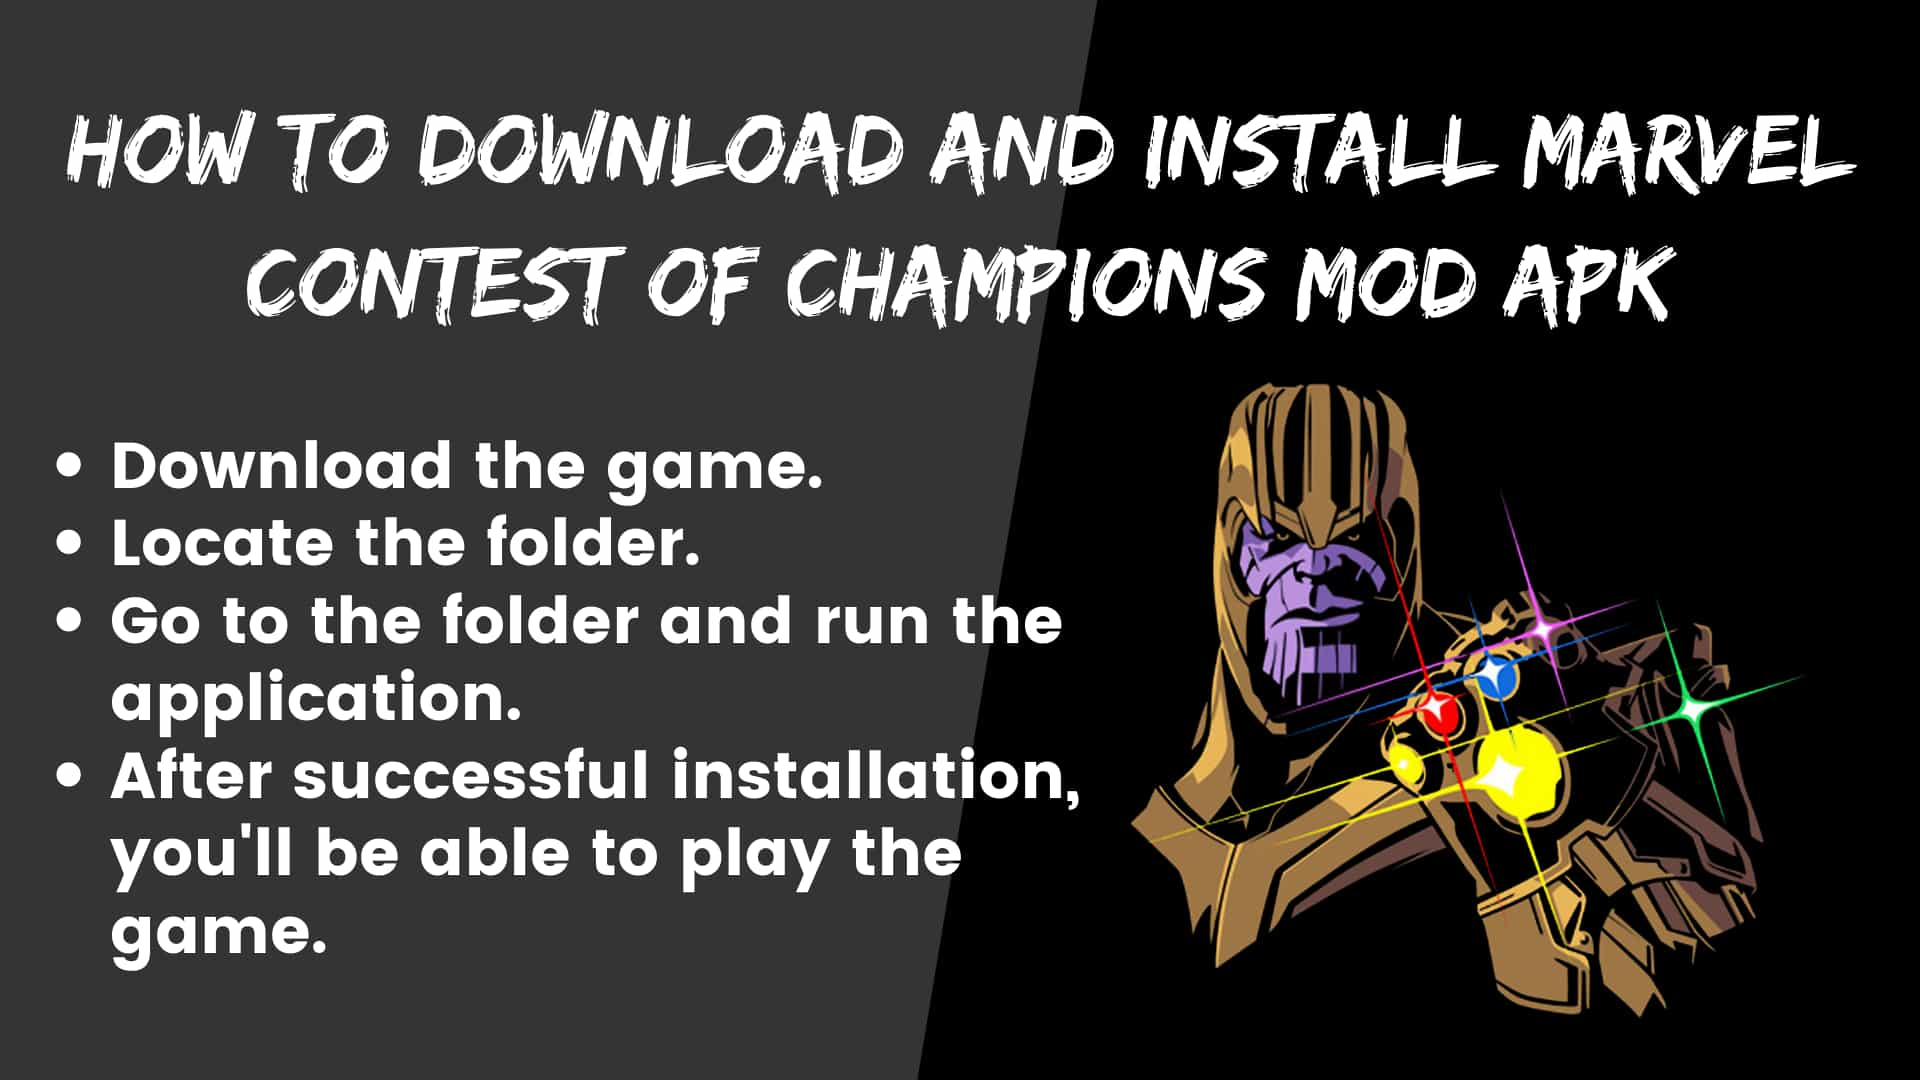 How to download and install Marvel Contest of Champions Mod apk